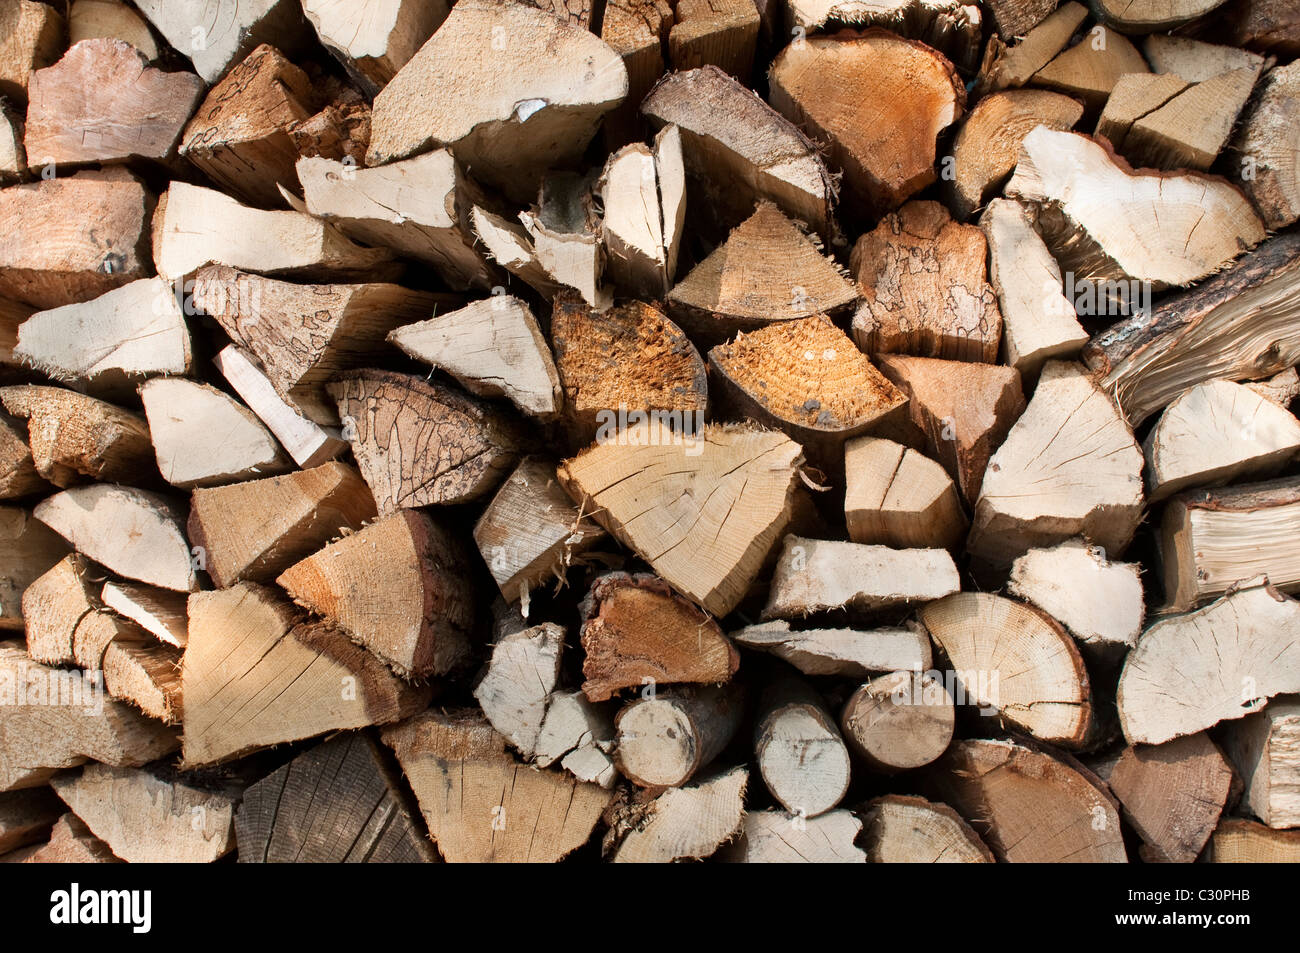 A pile/stack of logs drying out in the sun in rural Northumberland, England, UK. - Stock Image